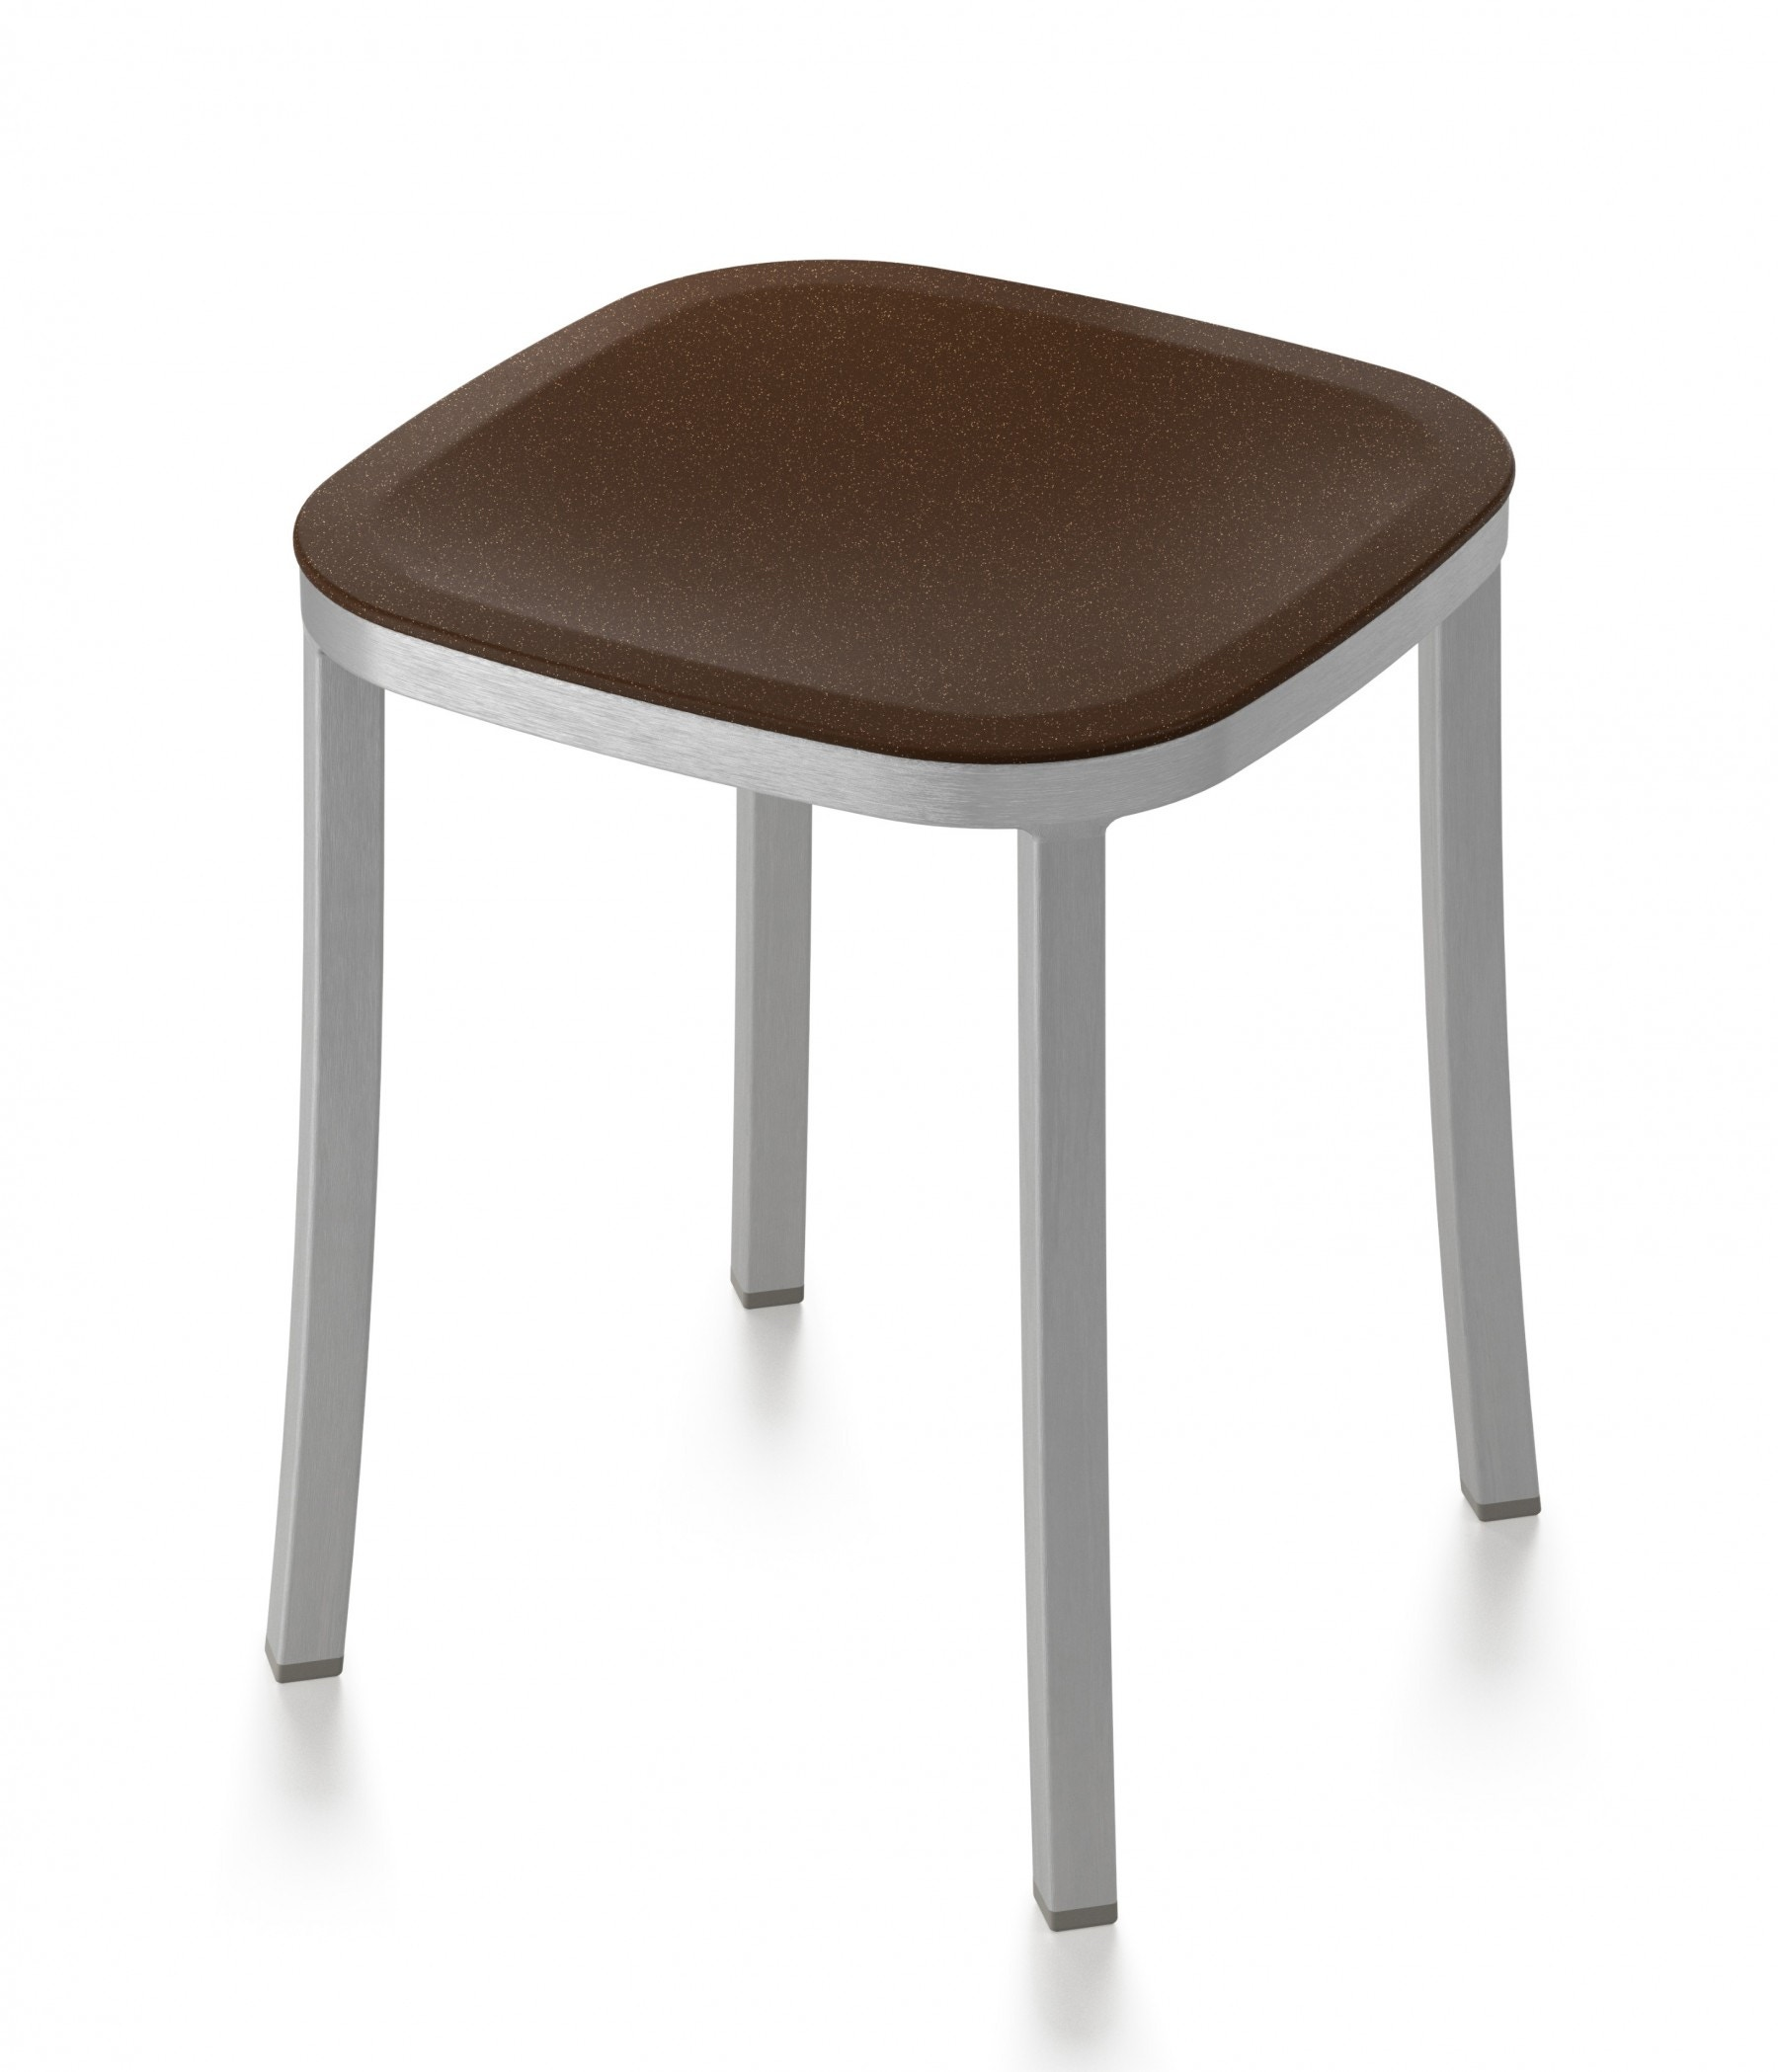 Emeco 1 Inch Stool By Jasper Morrison On Production Hold